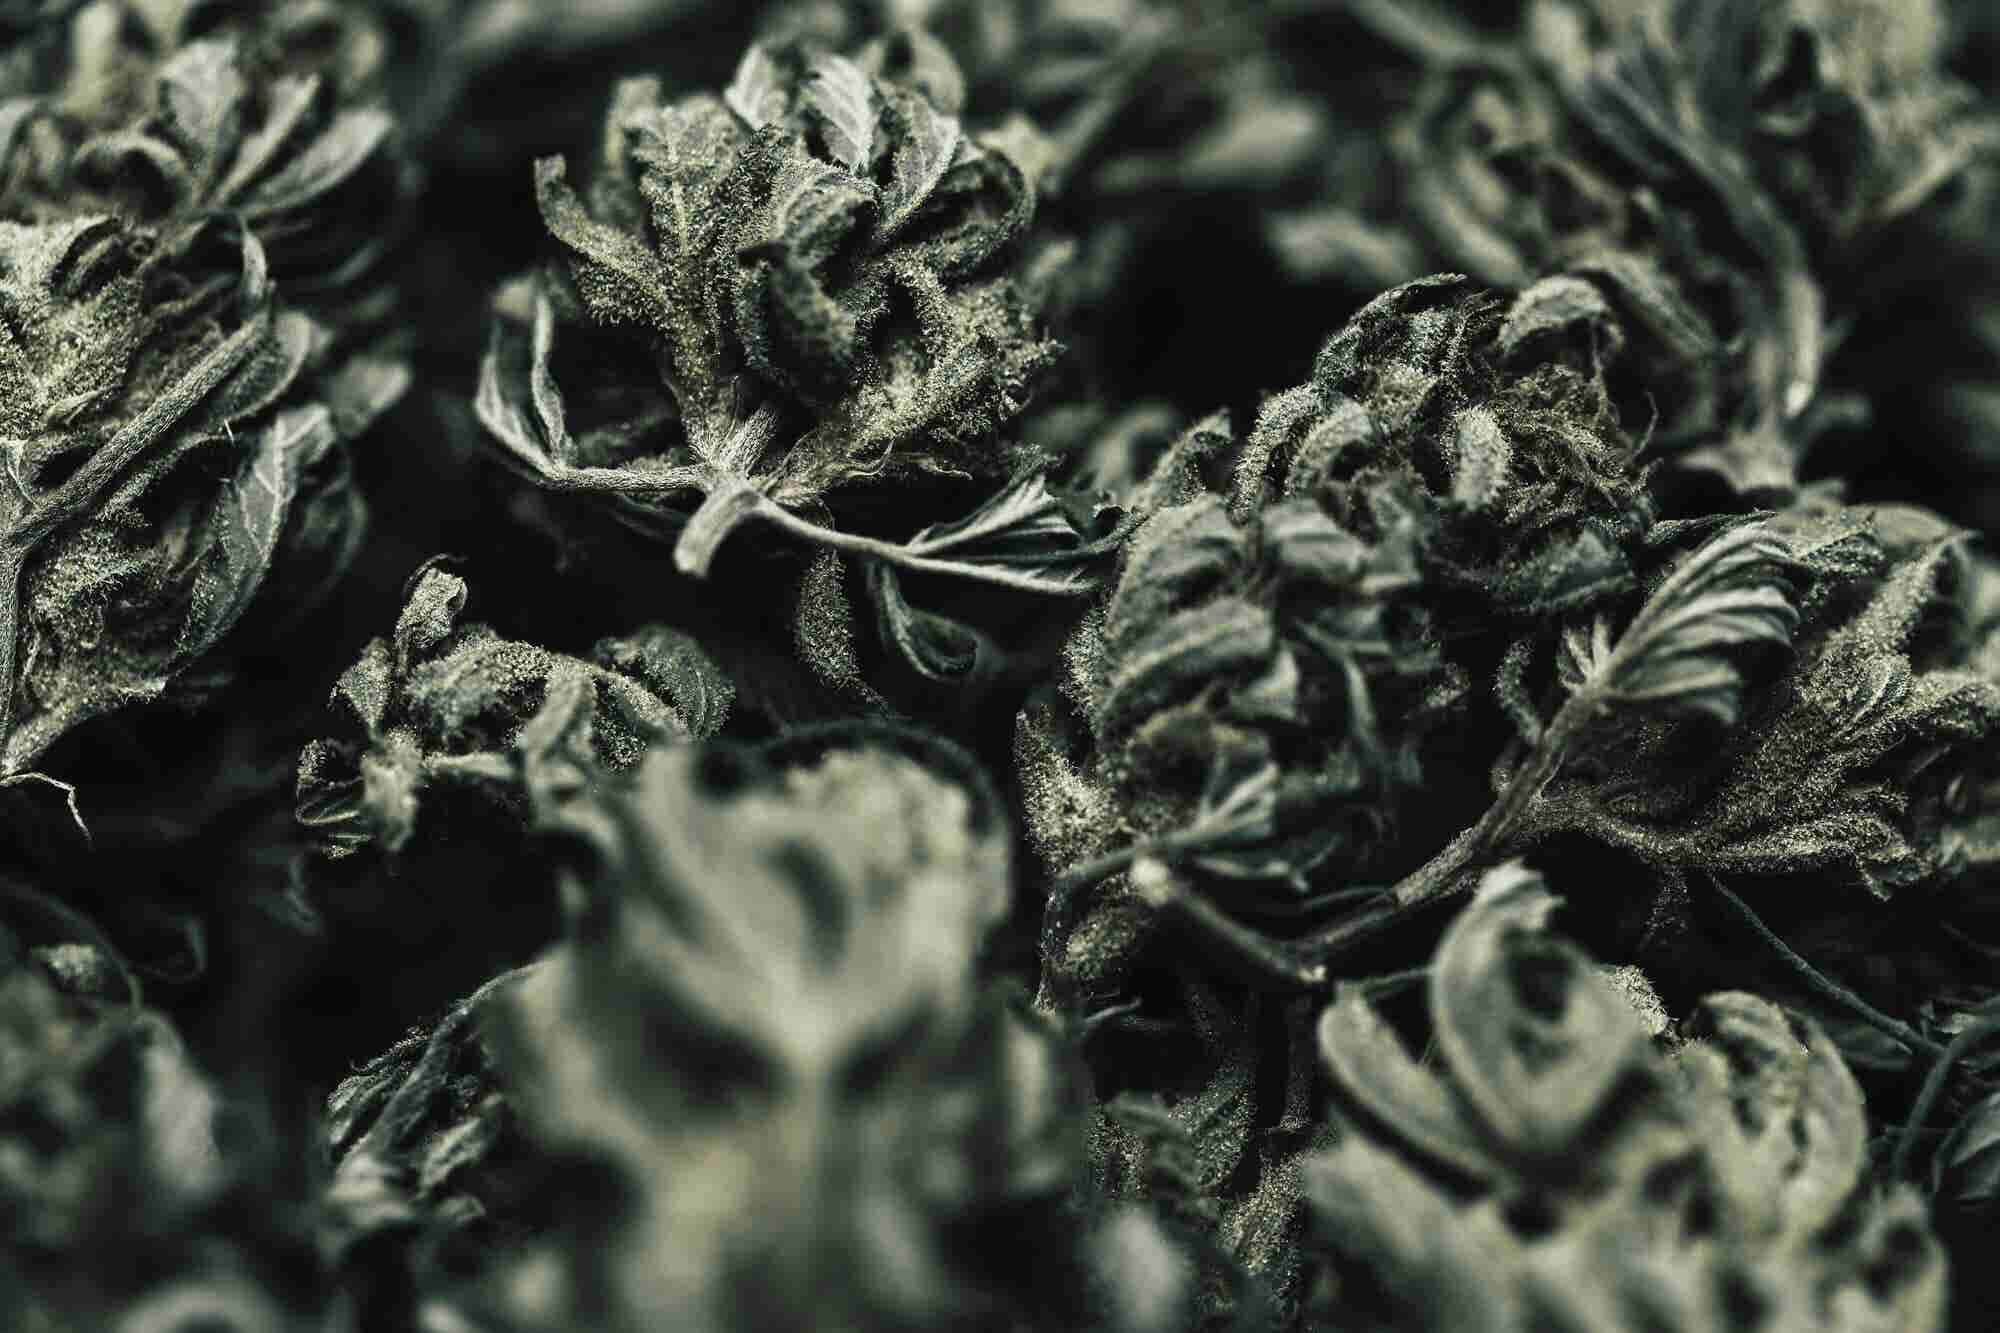 Can You Trust What's in Your Weed?